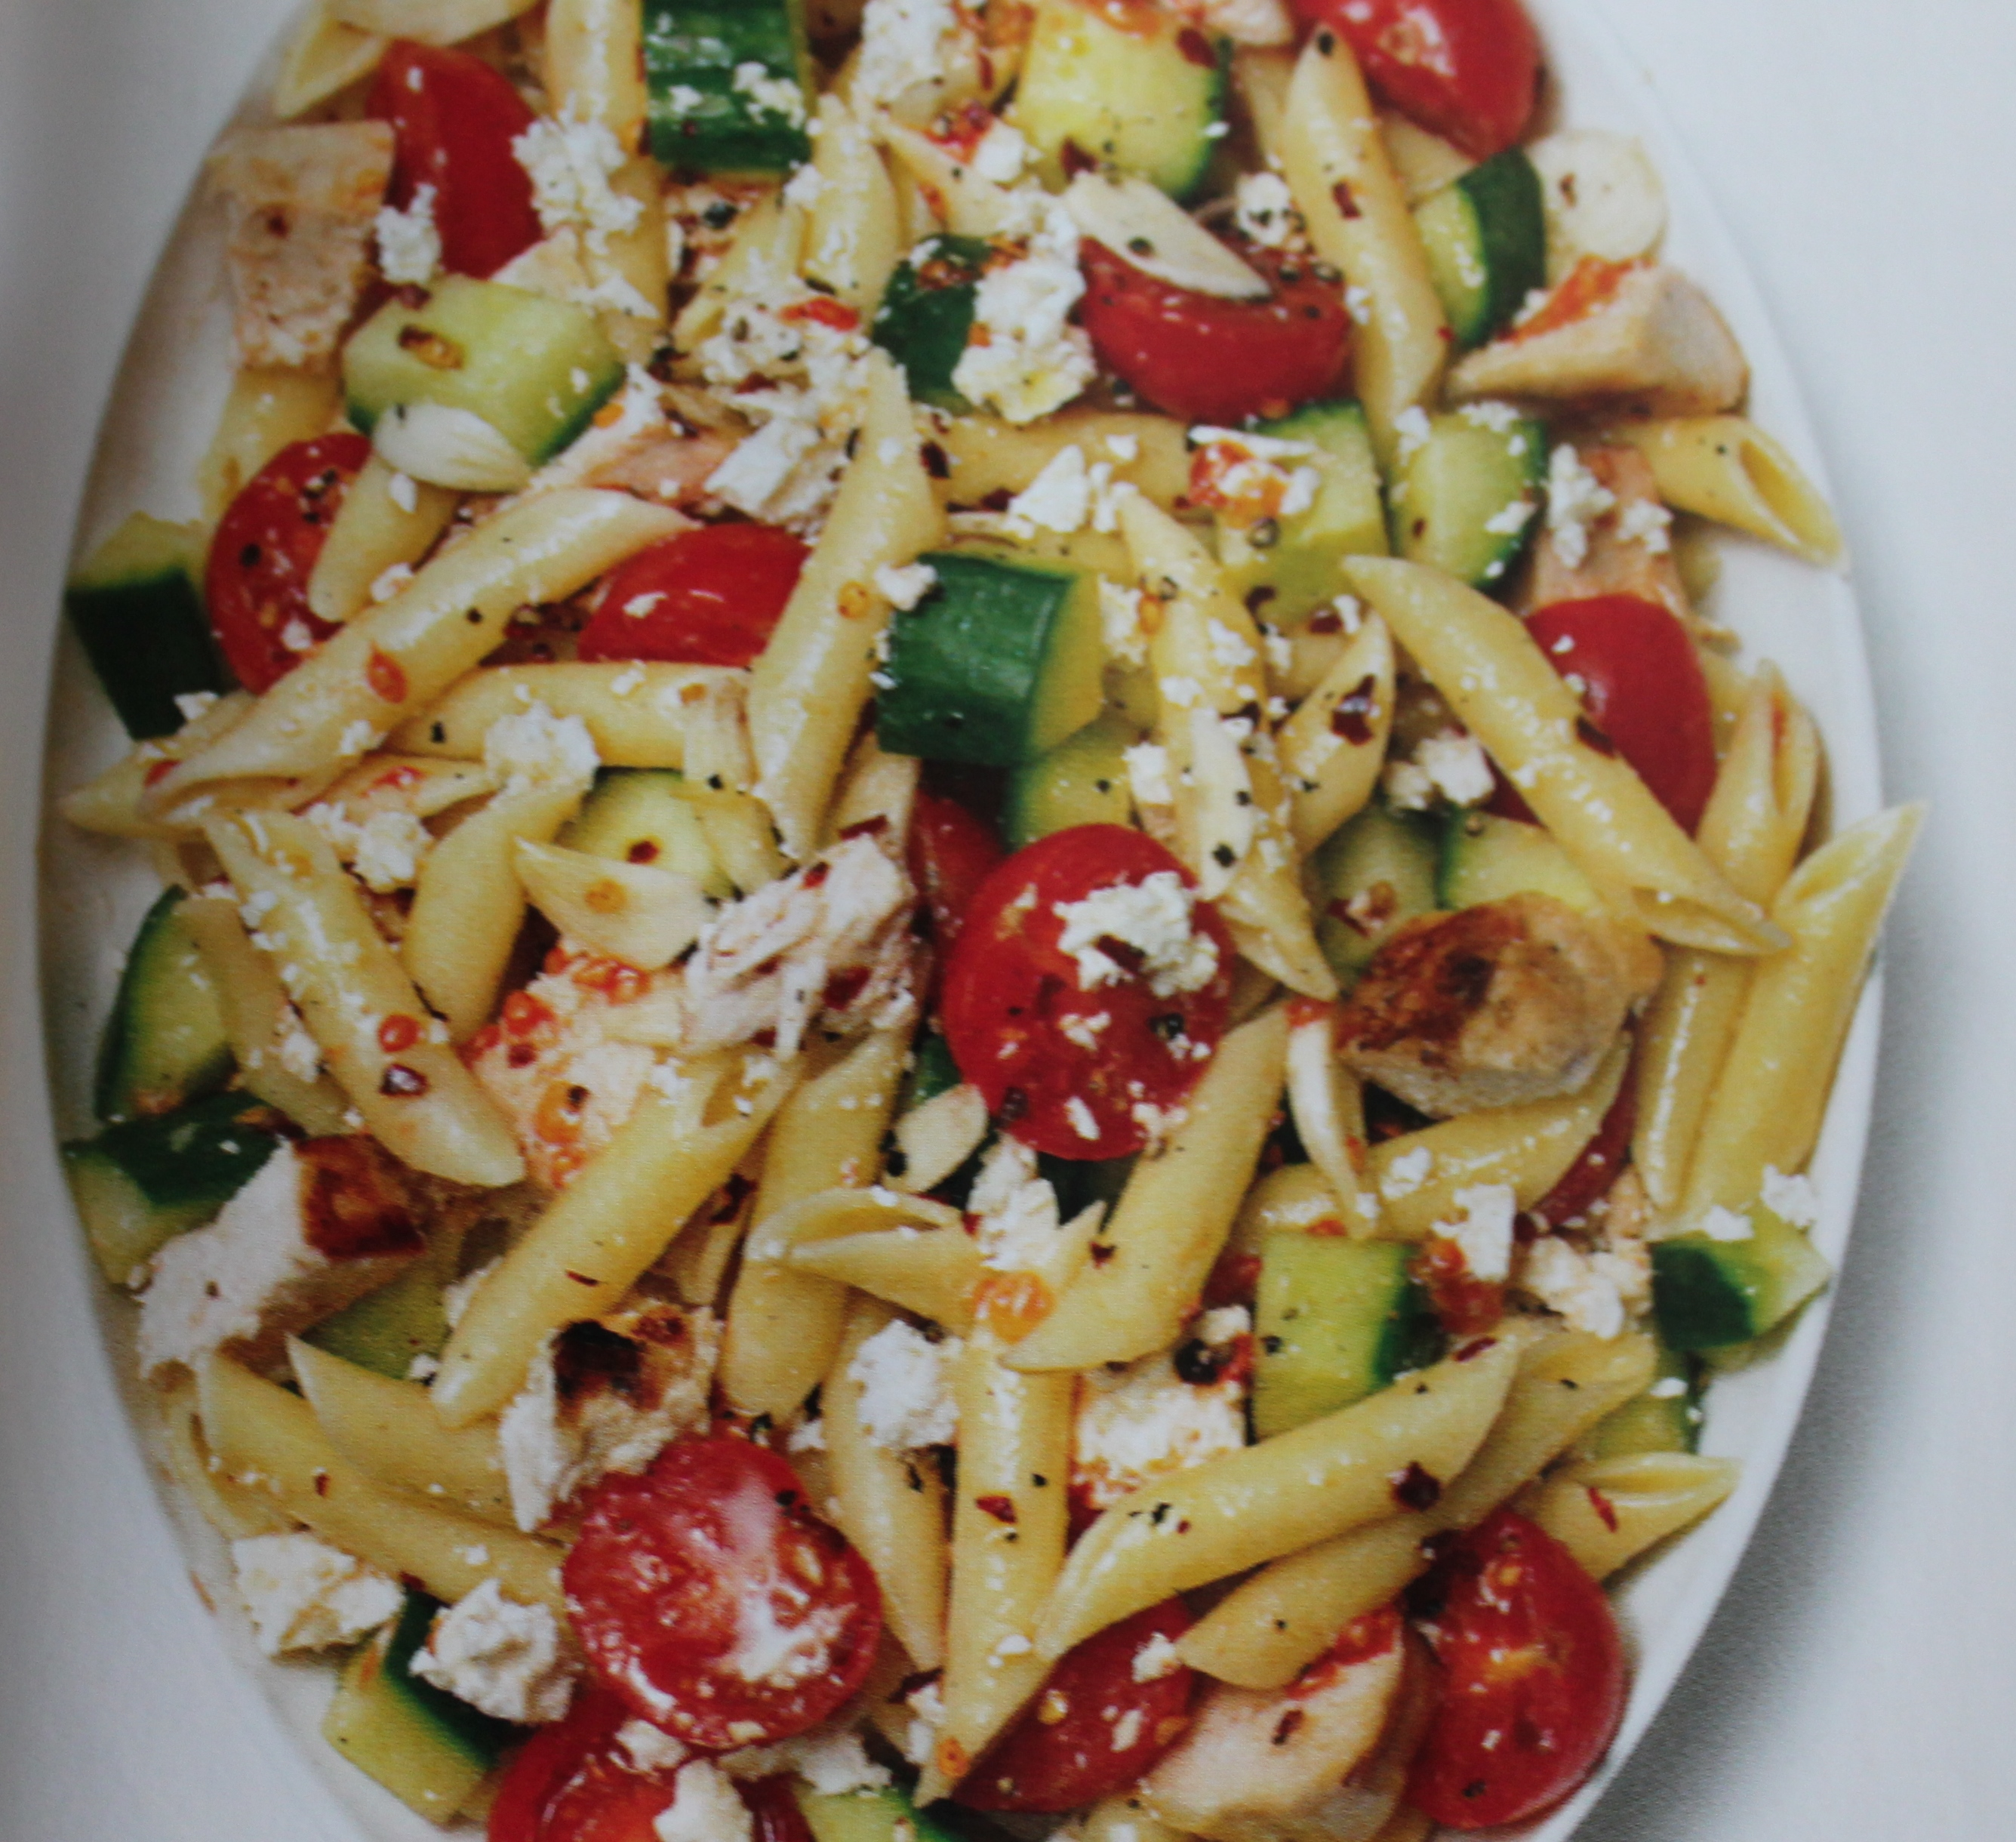 Chicken Pasta Salad w/Cherry Tomatoes | Quilts, Bags ...